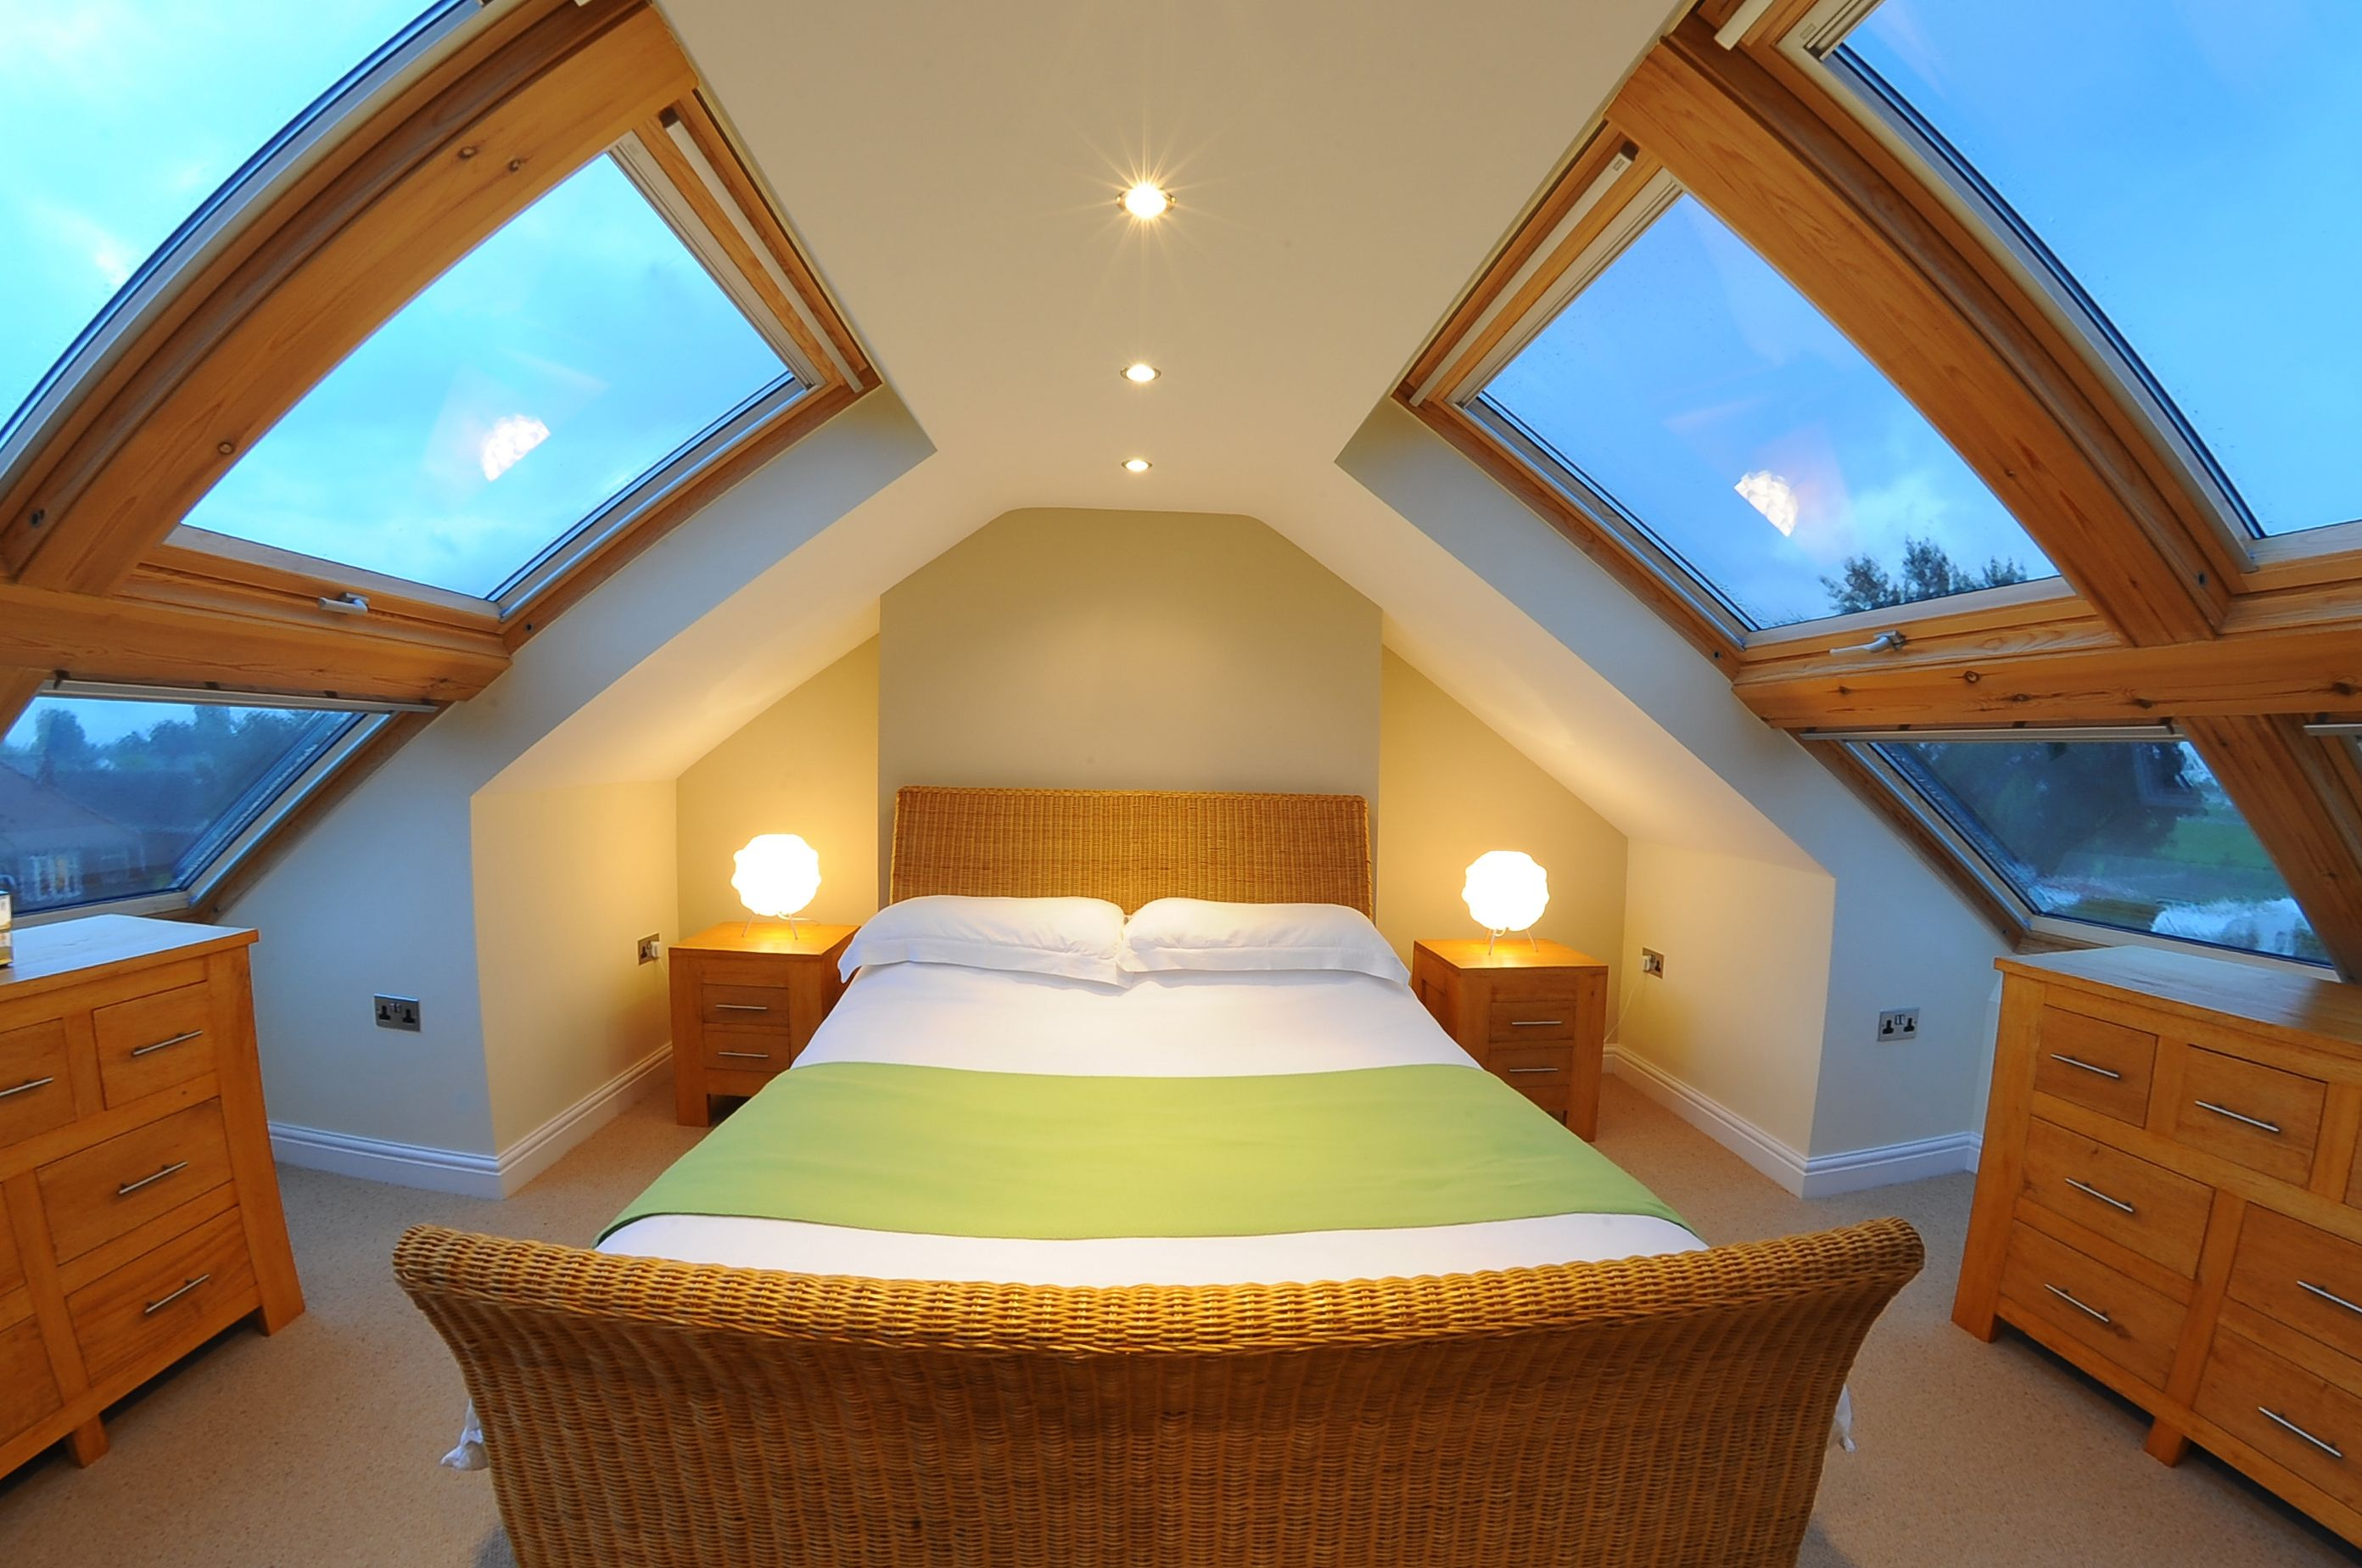 Even Low Roof Loft Conversions Can Be Made To Be Airy With The Use Of A Lot Of Veluxs 2 Groups Of 4 Windows In O Loft Conversion Loft Spaces Loft Conversion Uk